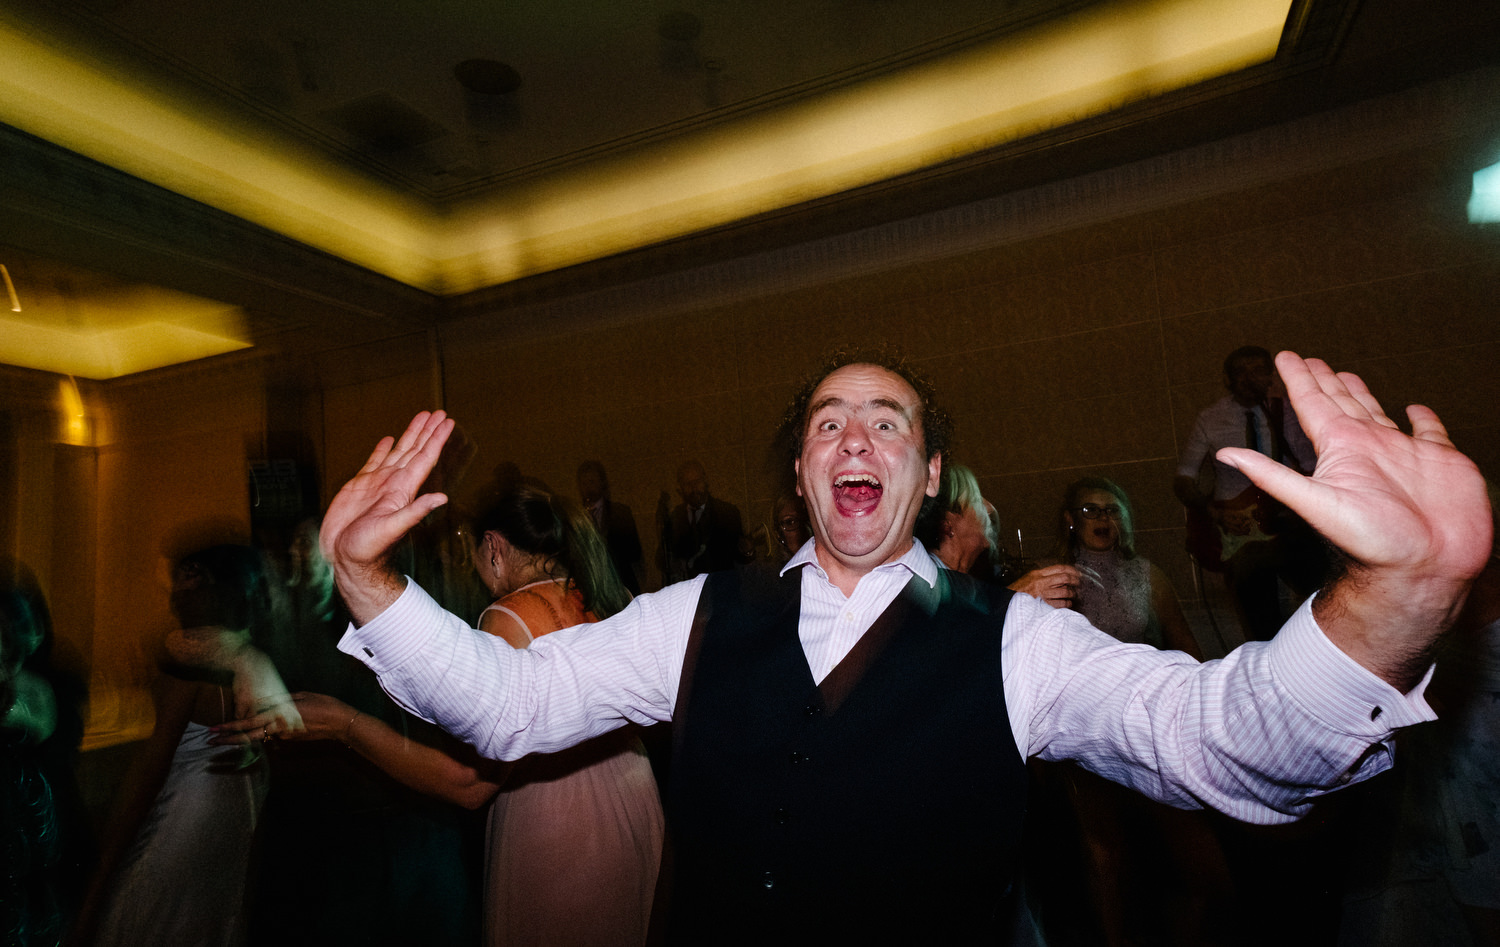 dmp0736_photographer_wedding_dublin_david_mcclelland_candid_photography_fujifilm_shelbourne_reception_documentary